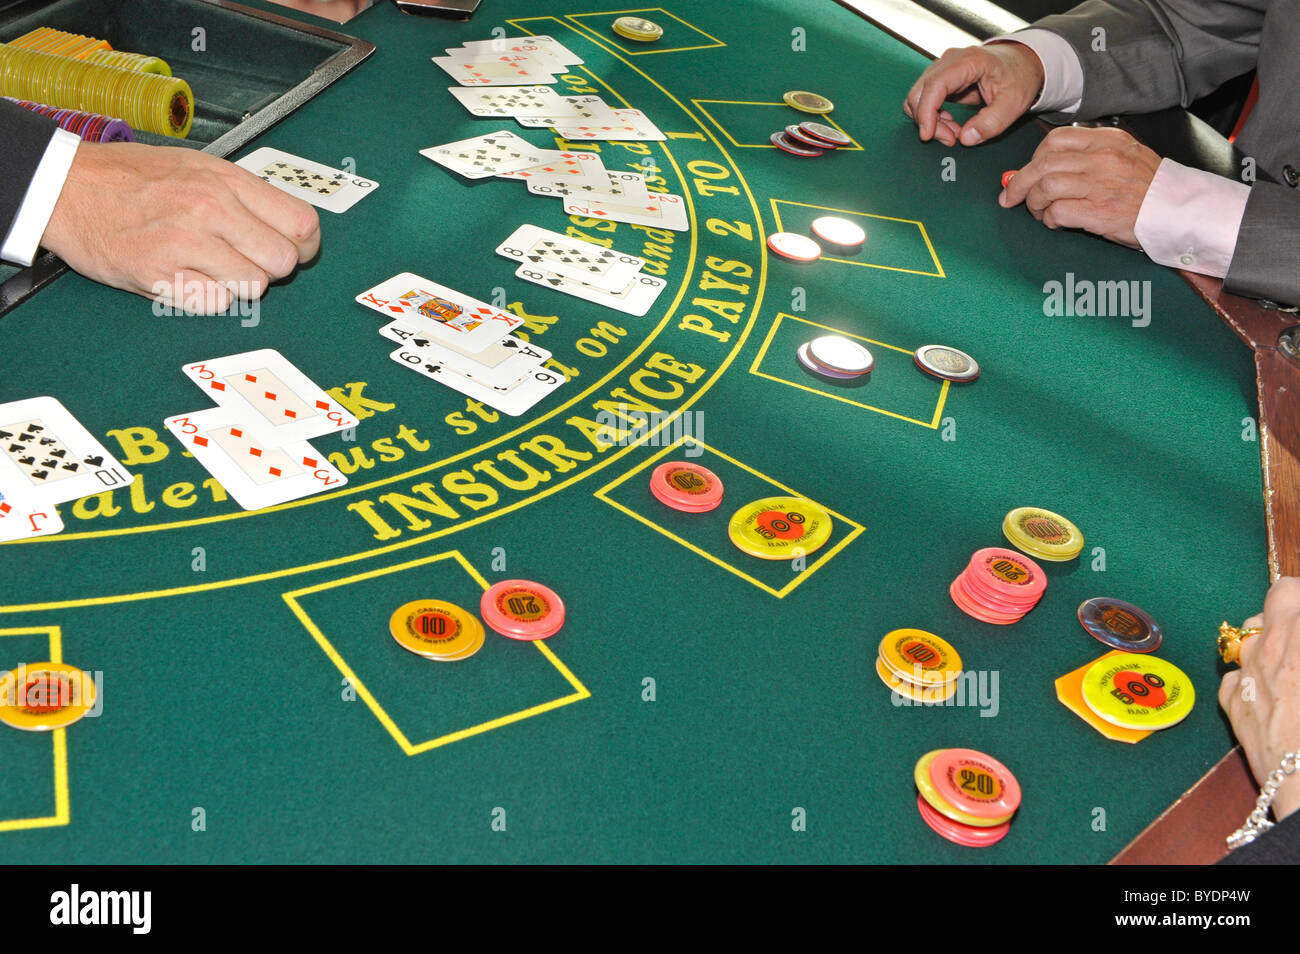 black jack poker table casino of bad wiessee tegernsee lake stock photo royalty free image. Black Bedroom Furniture Sets. Home Design Ideas